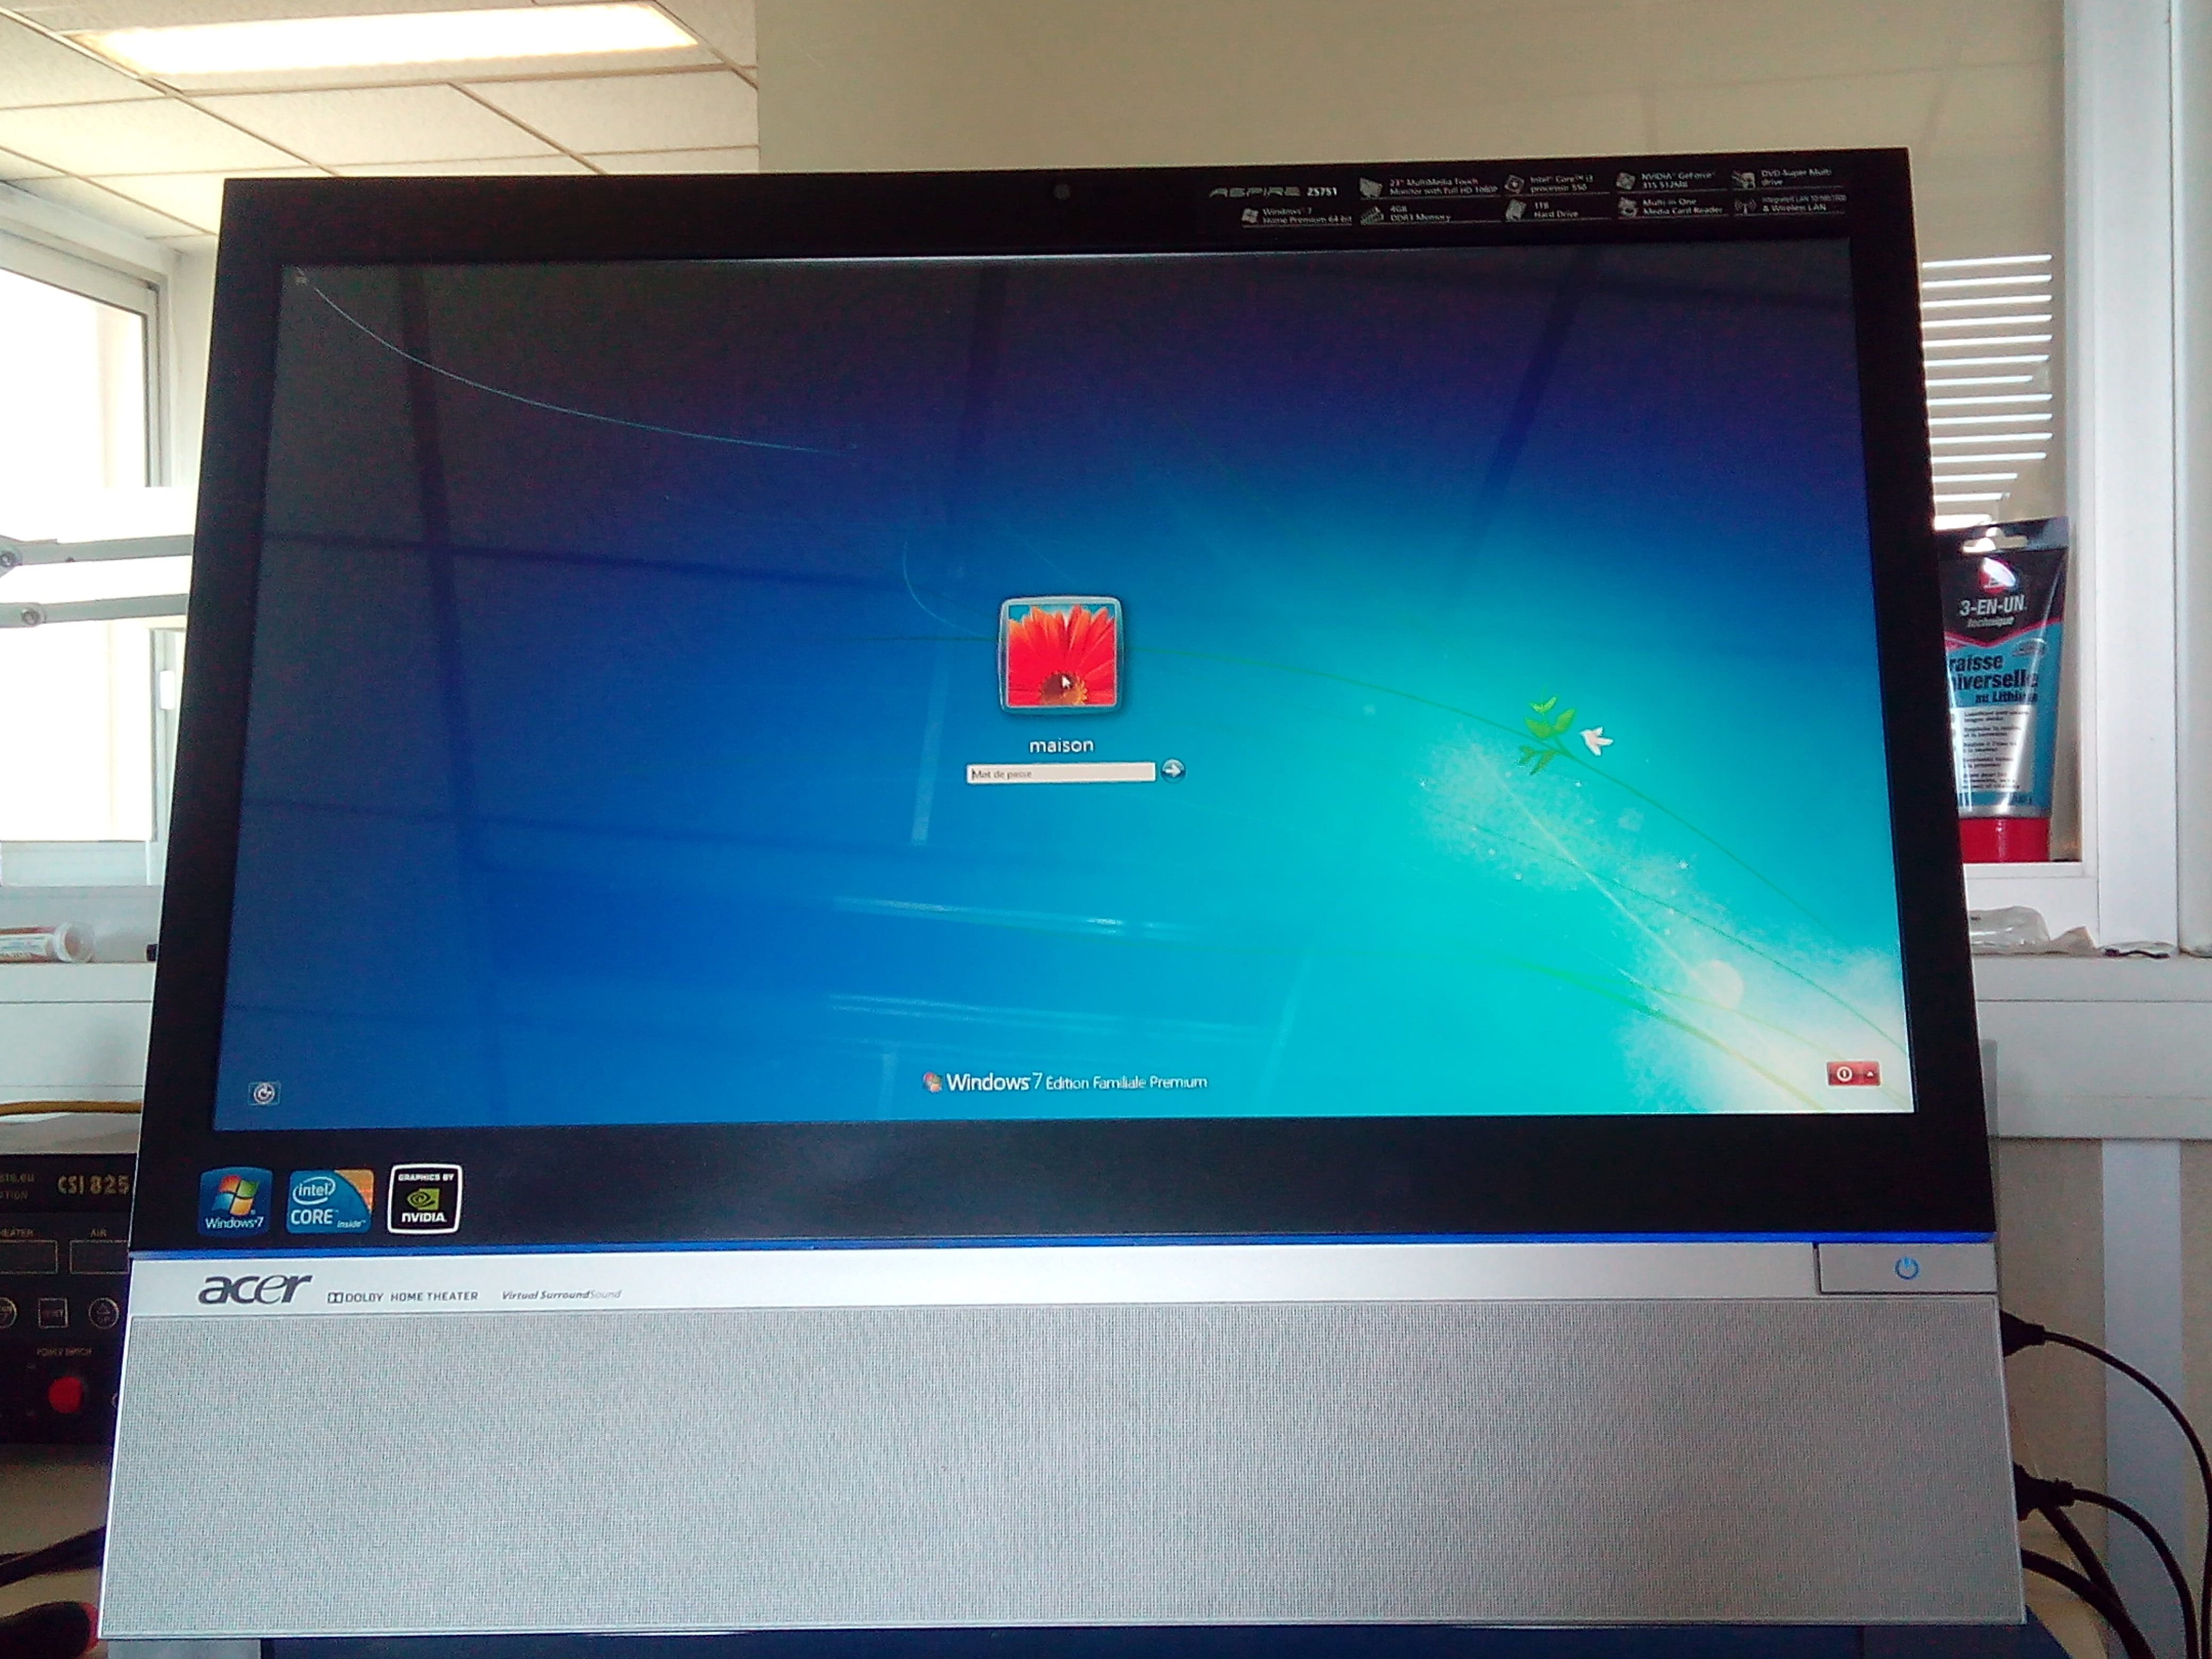 ACER ASPIRE Z5751 WINDOWS 7 X64 DRIVER DOWNLOAD